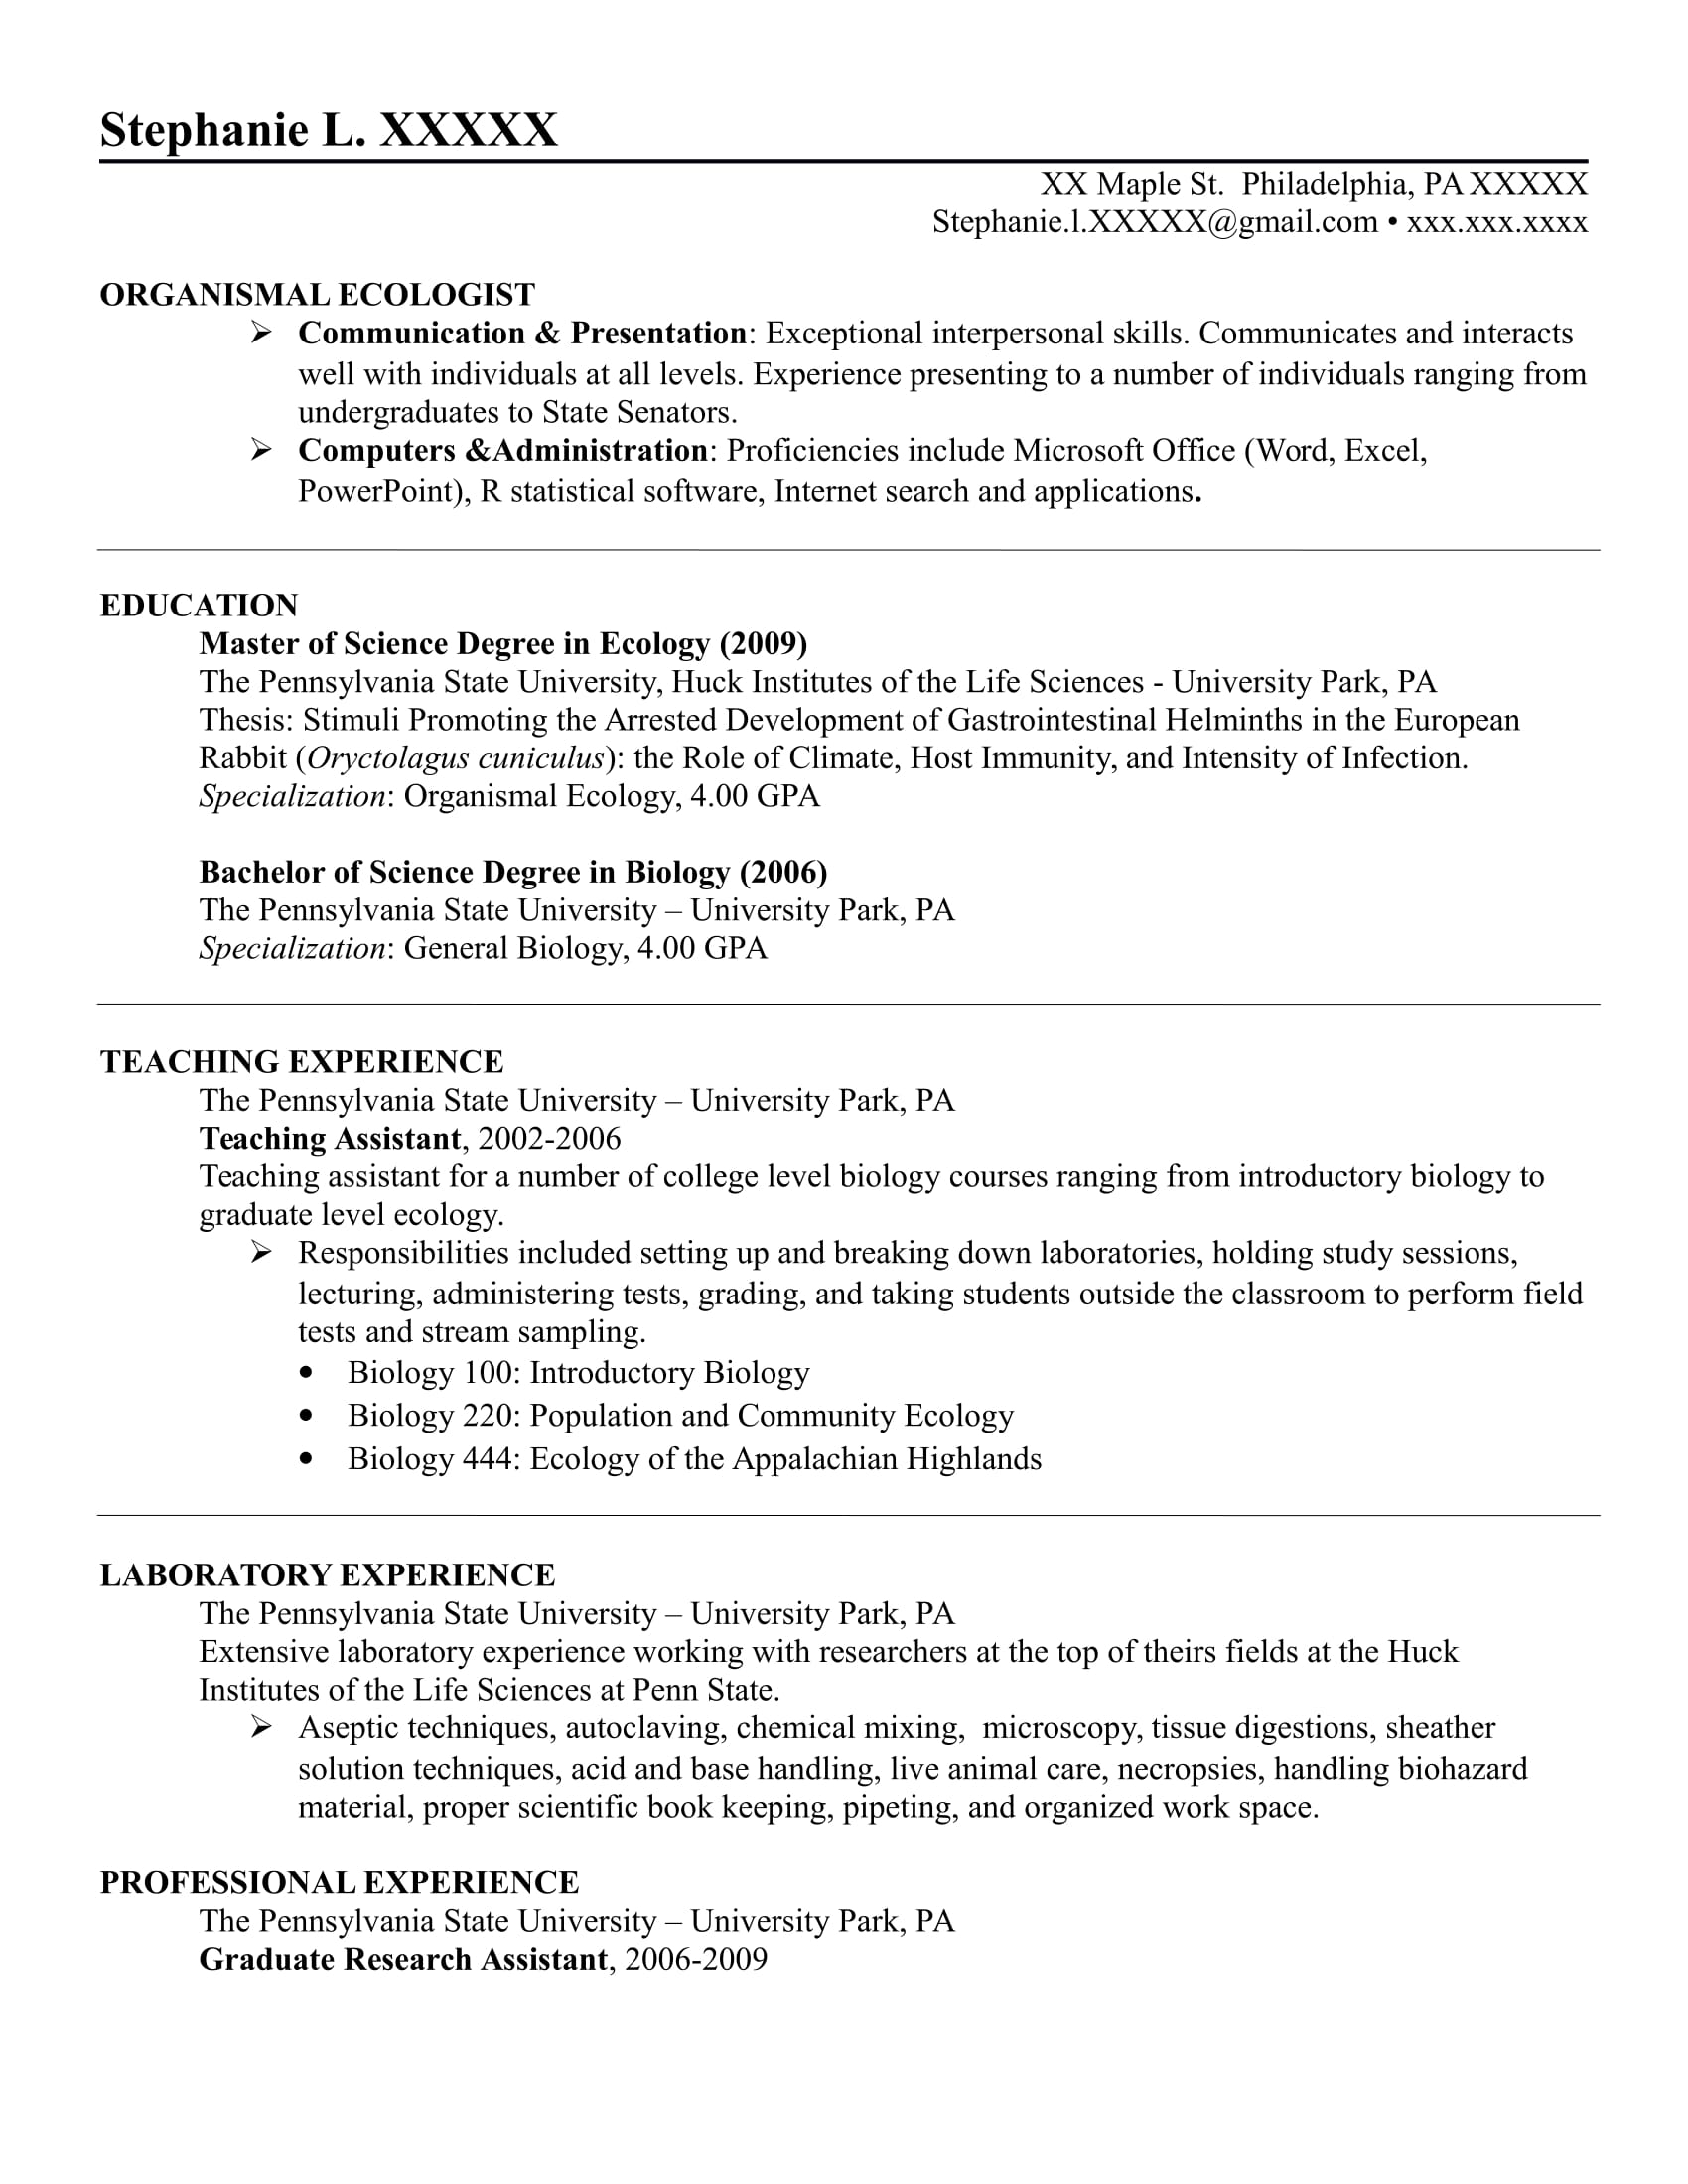 Resume Rewrite Service Free Resume Writing Service